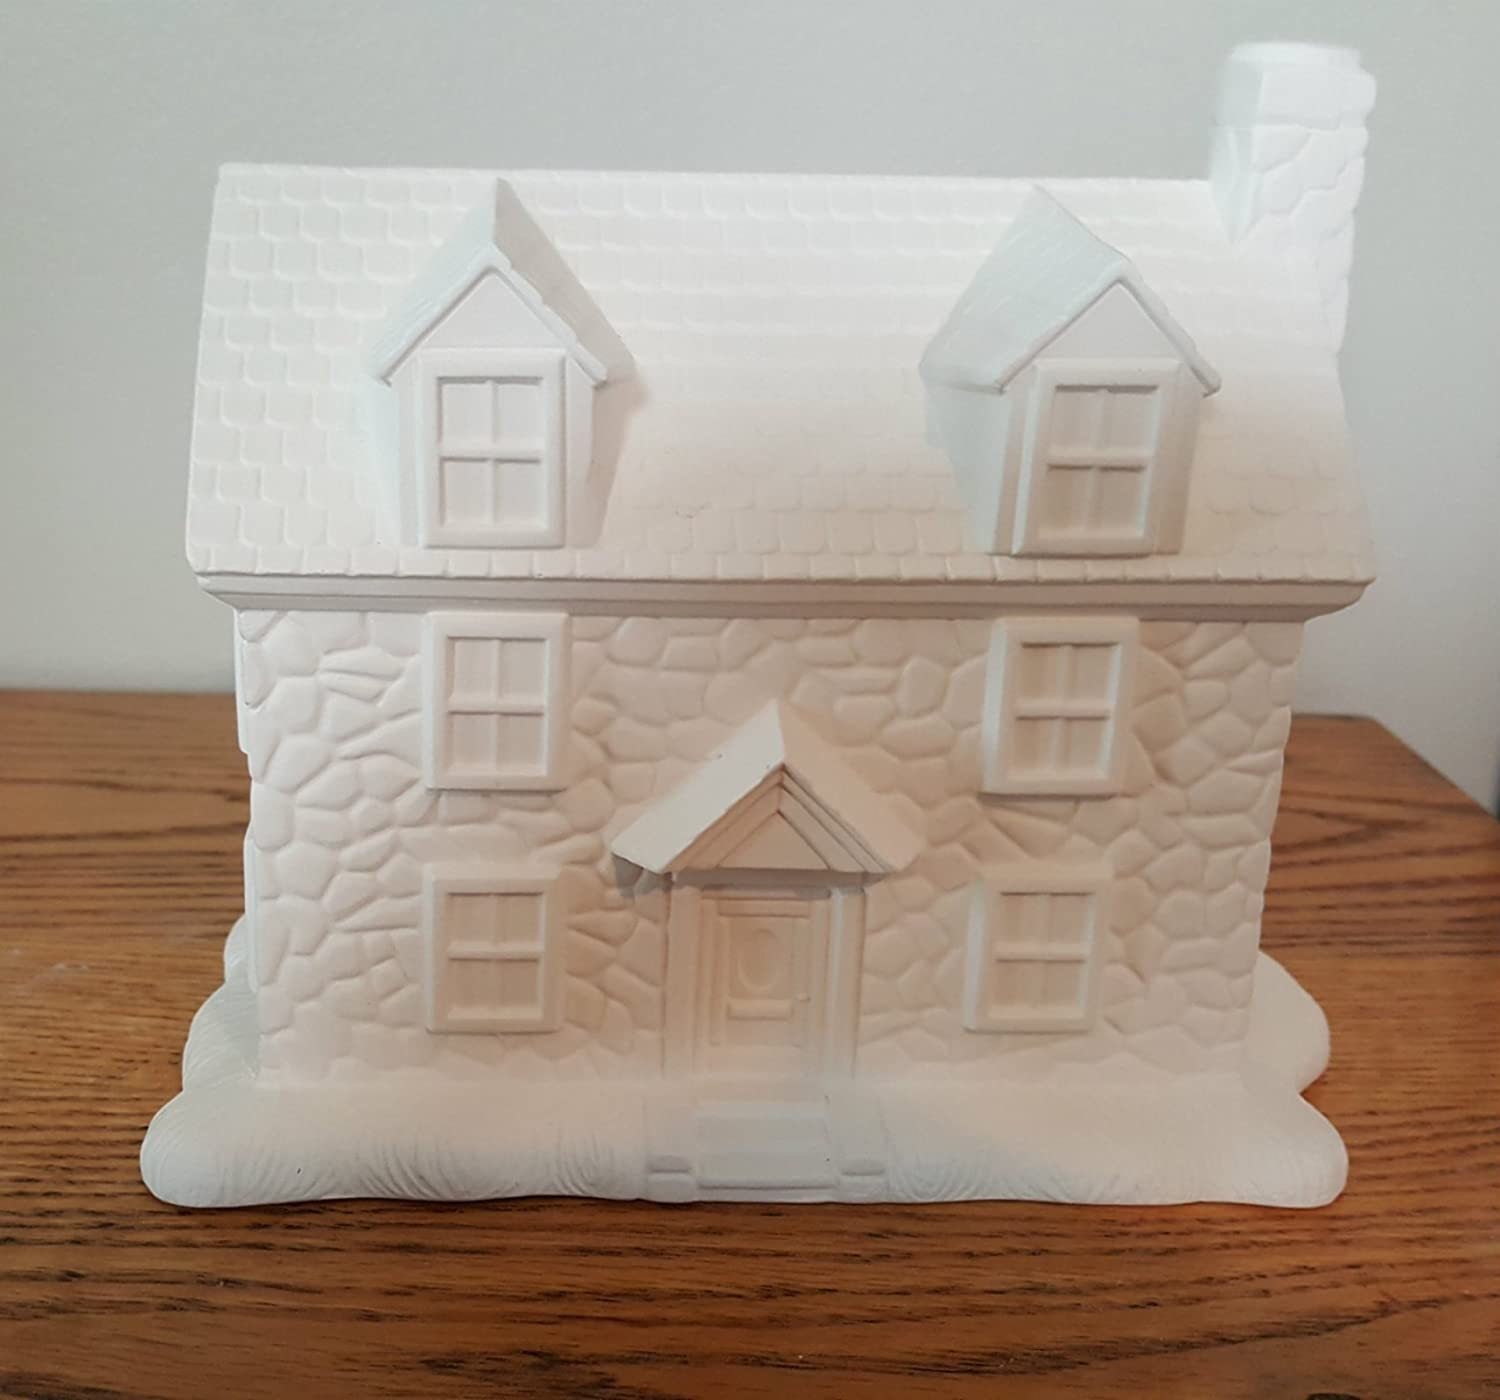 Two Story Stone House unpainted ceramic bisque ready to be painted Christmas Village